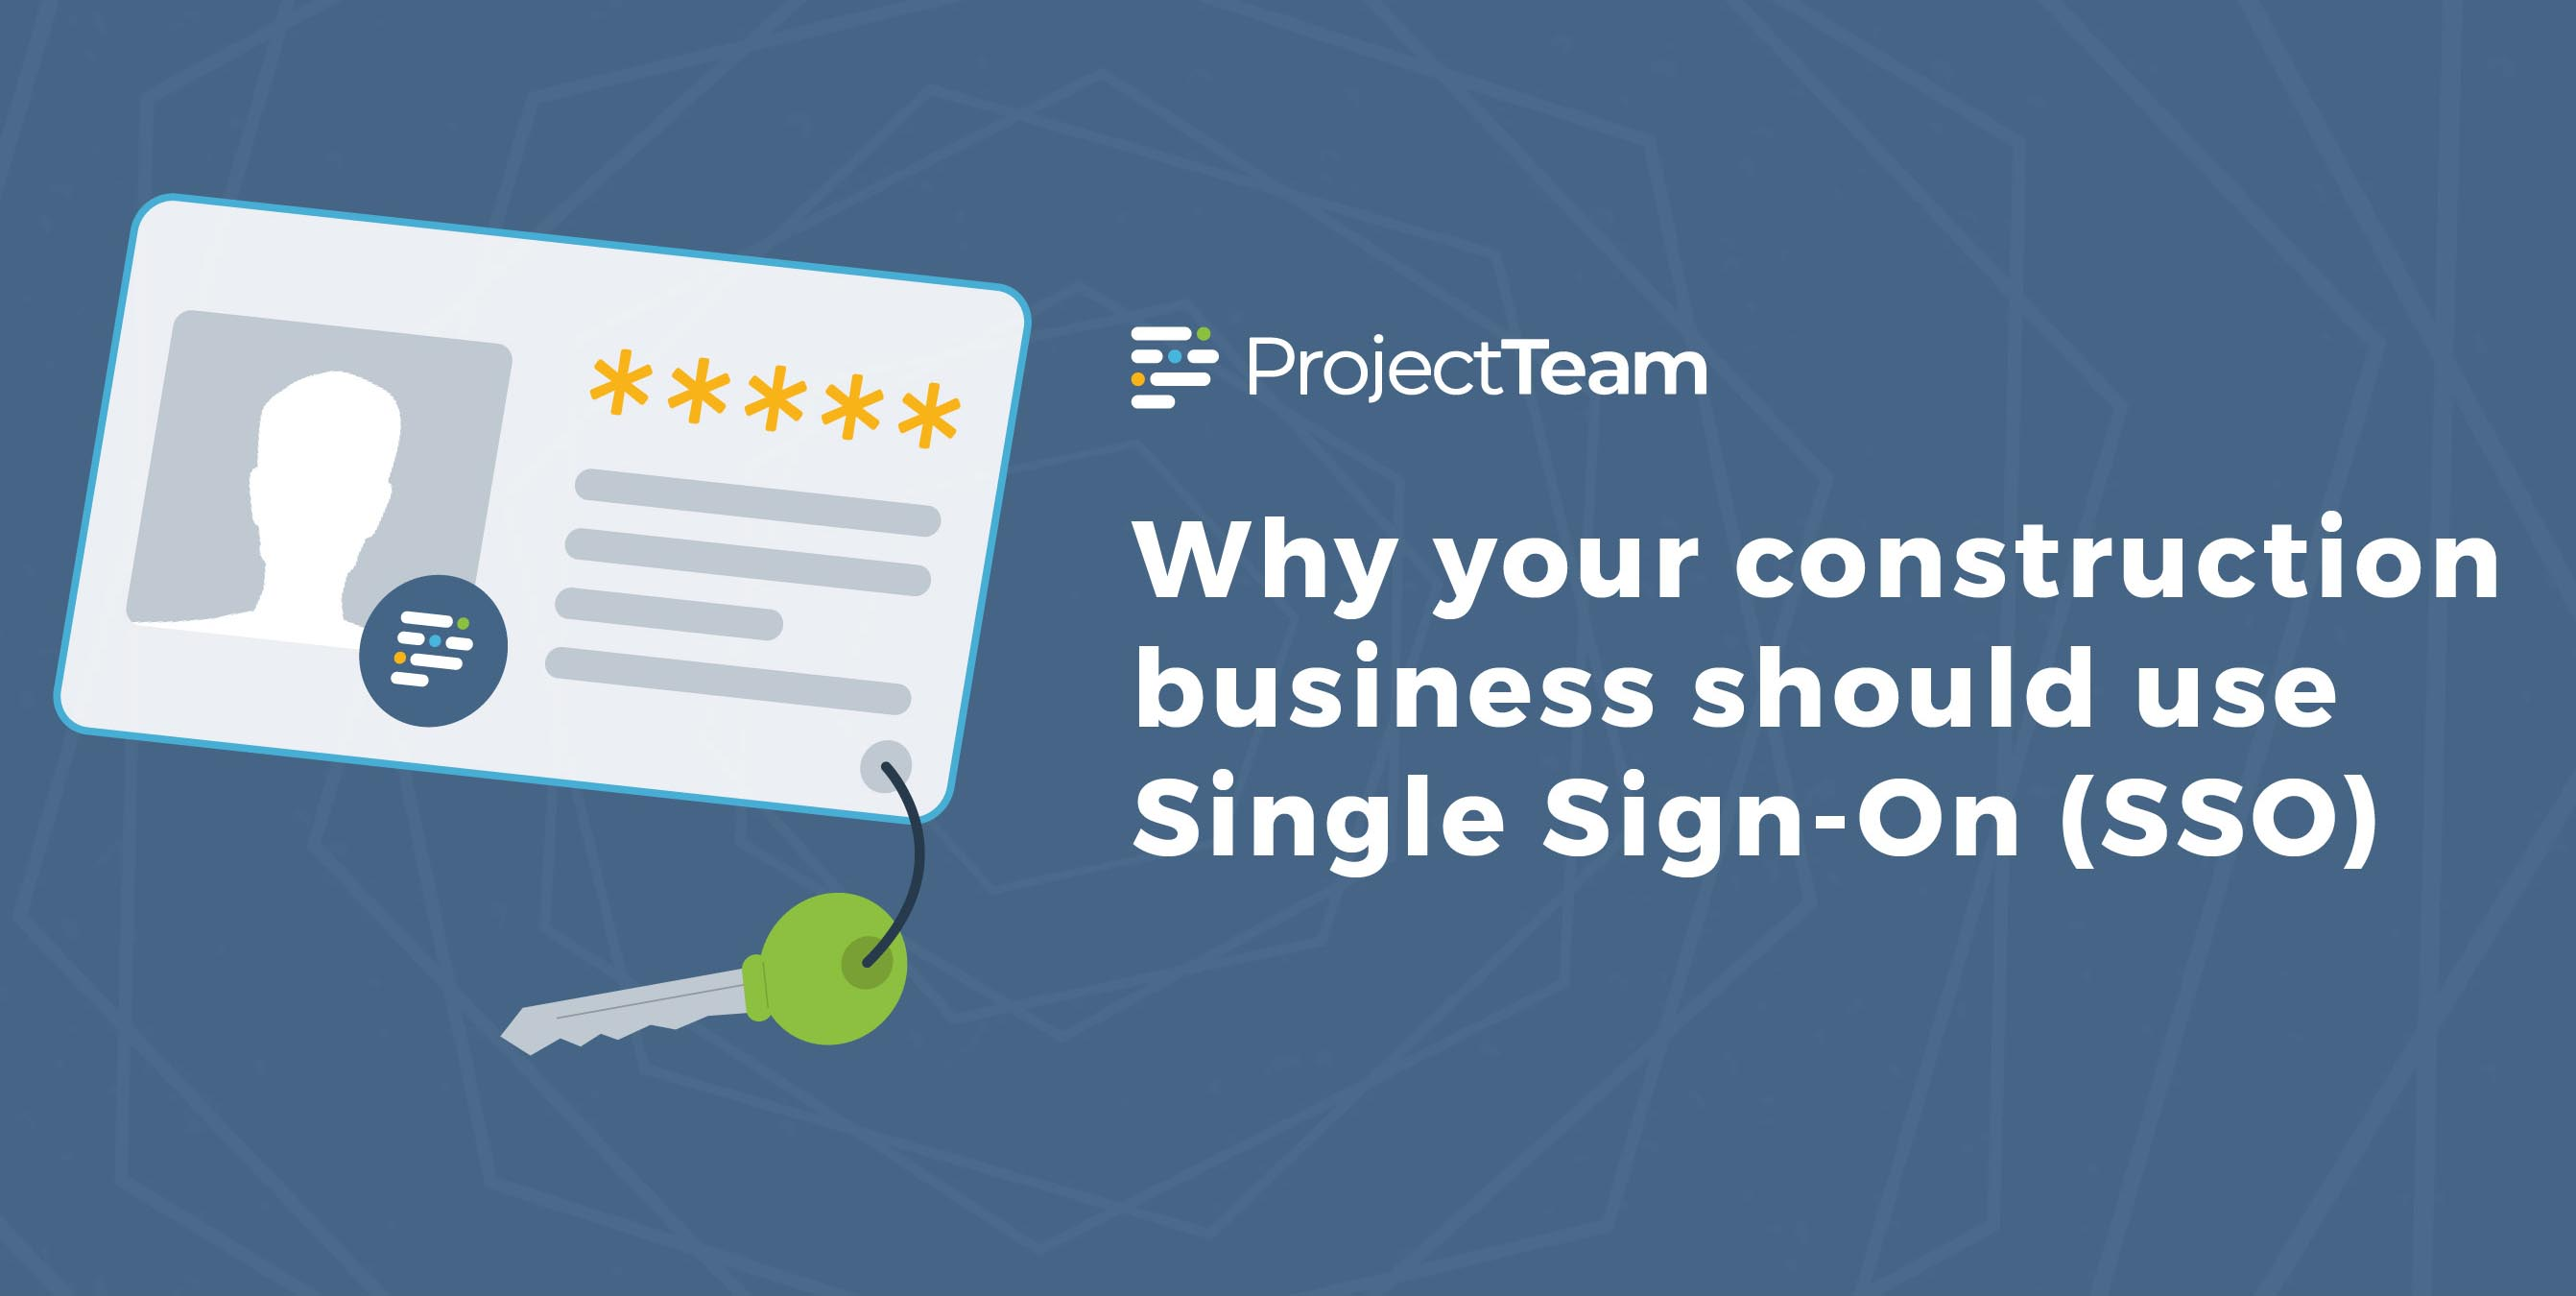 Why your construction business should be using Single Sign-On (SSO)